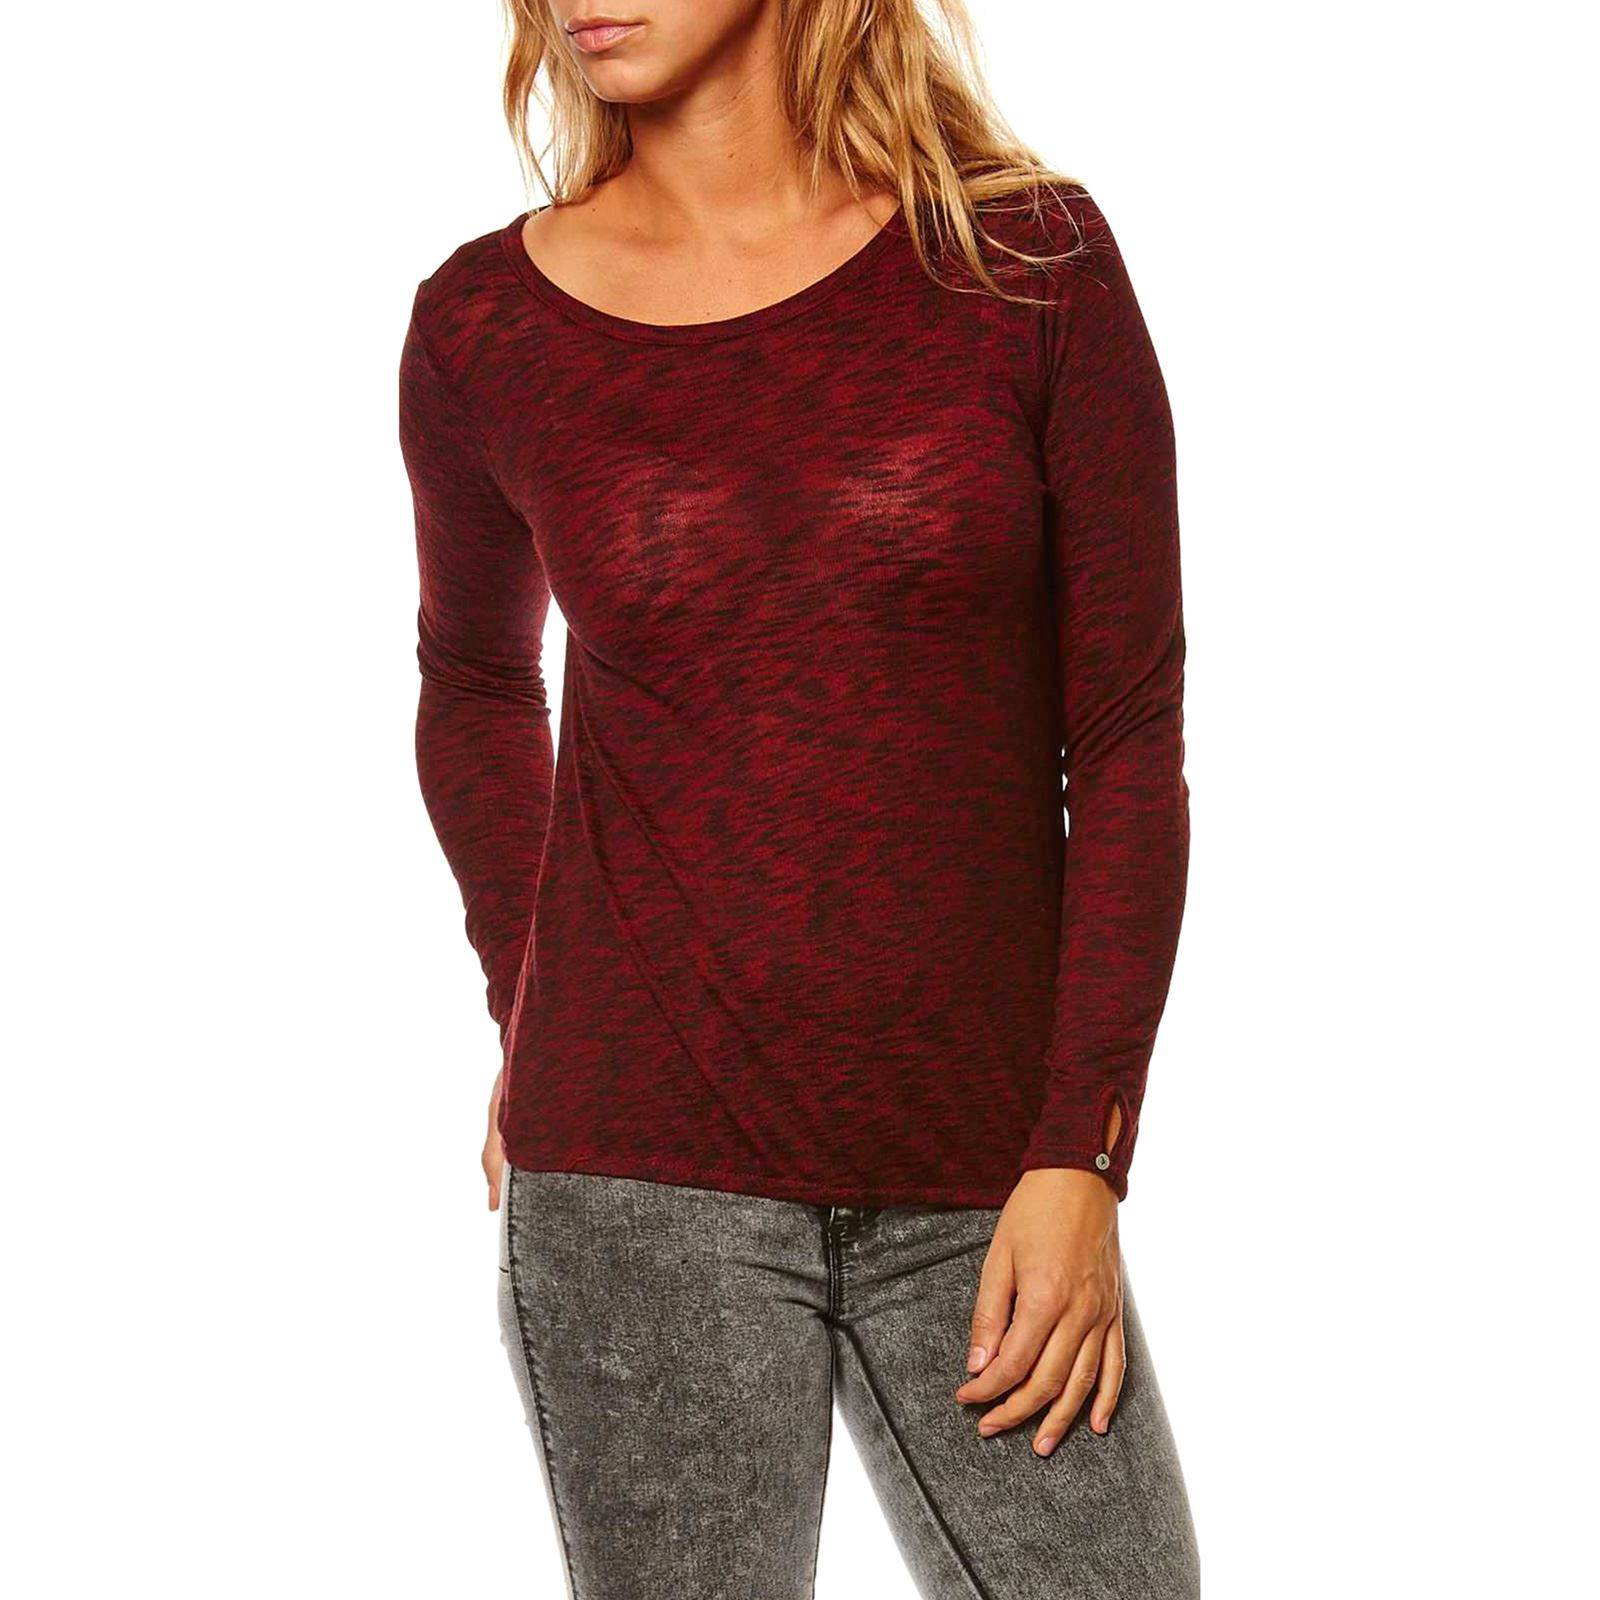 Esprit T-shirt manches longues - rouge   BrandAlley a4586ffc30f